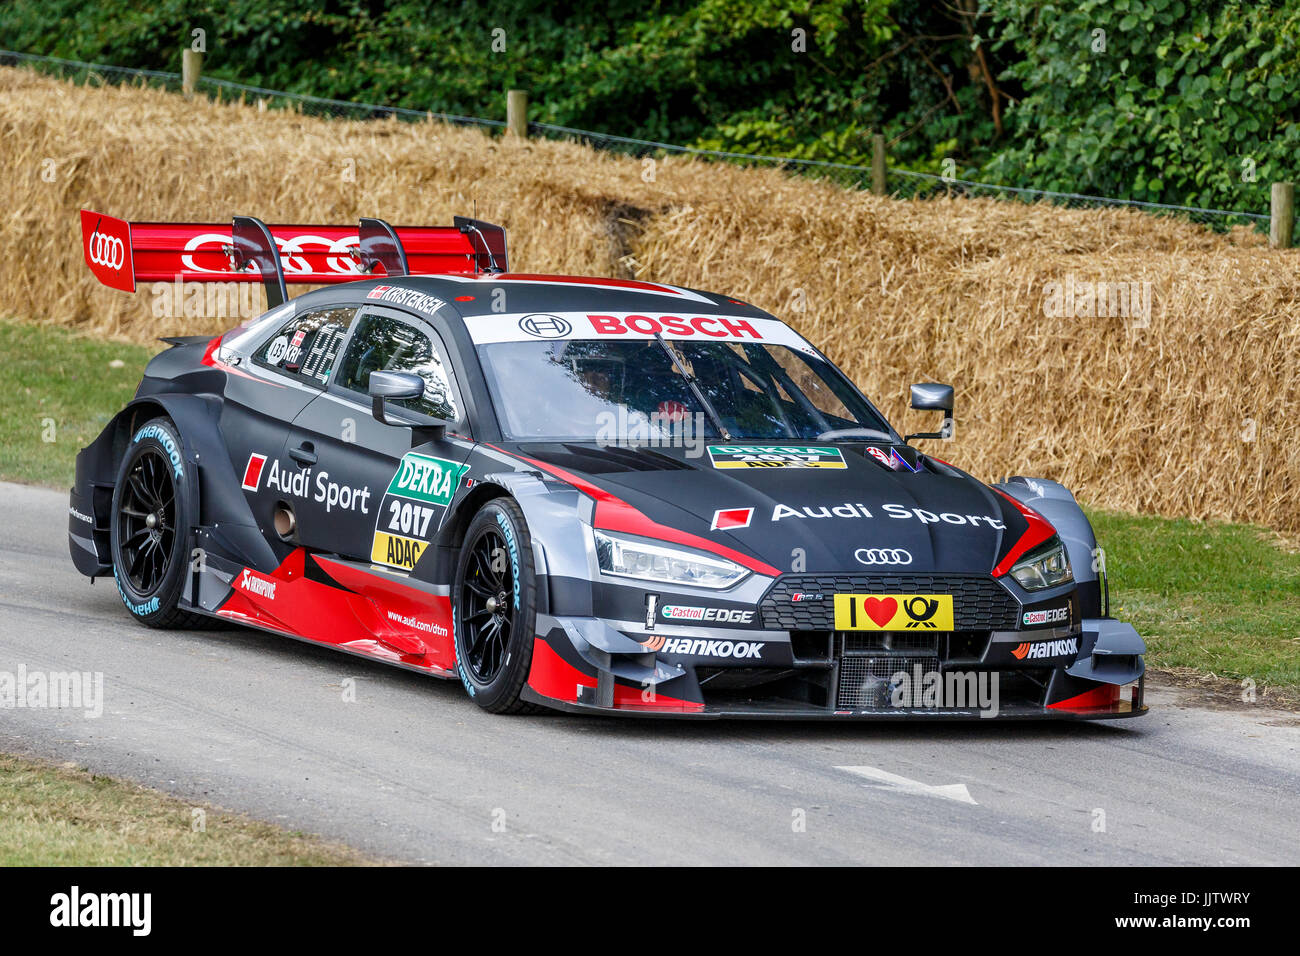 2017 Audi RS5 DTM racer with driver Tom Kristensen at the 2017 Goodwood Festival of Speed, Sussex, UK. - Stock Image